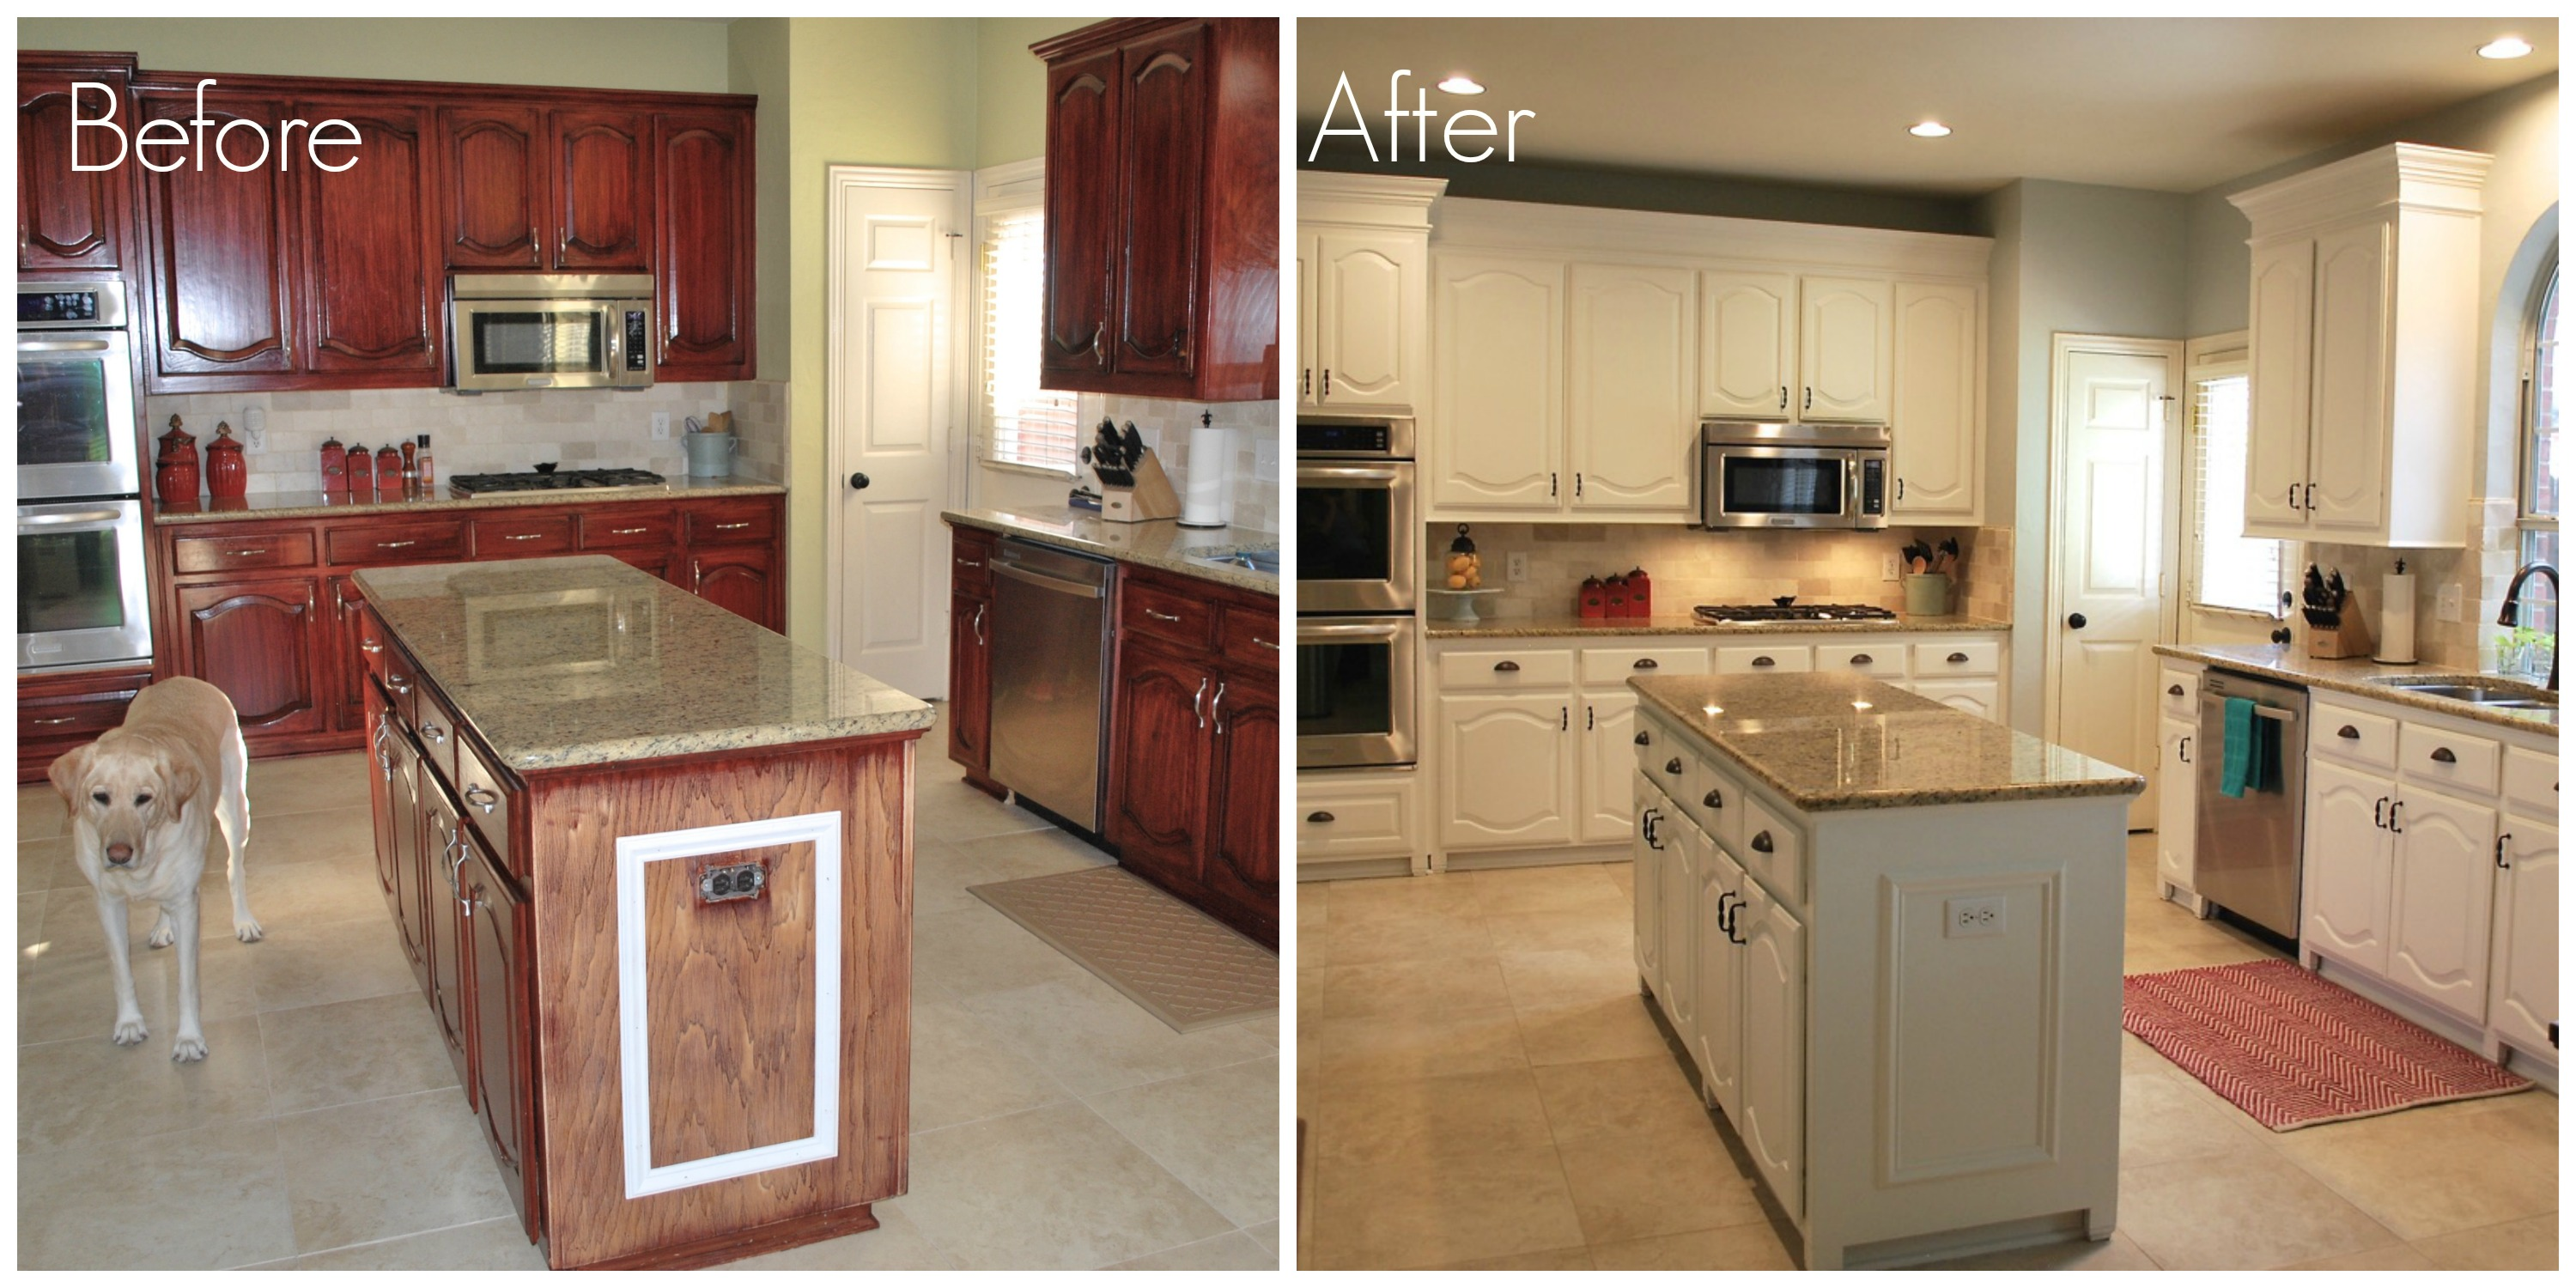 Mostly Diy Kitchen Cabinet Transformation The Process Beautiful